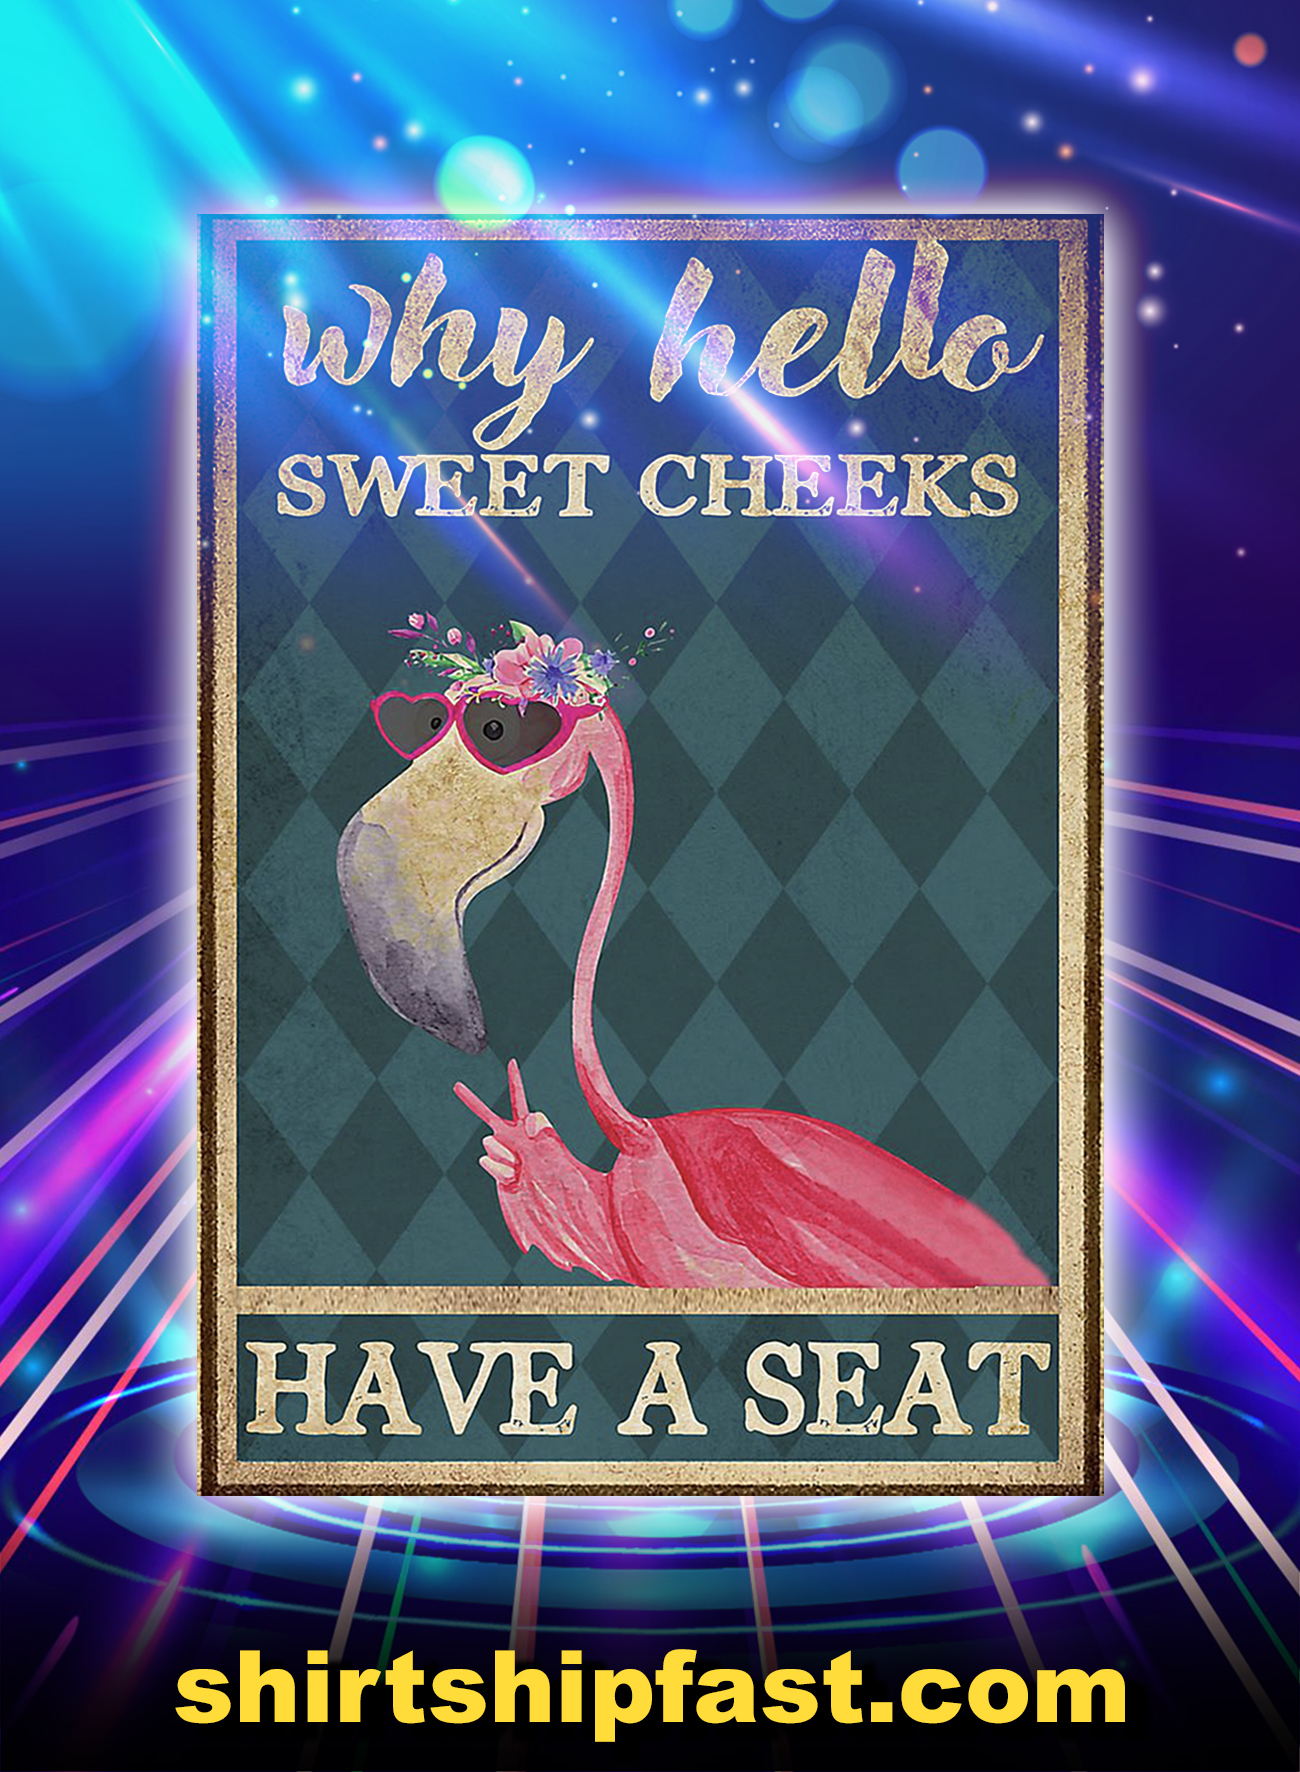 Flamingo why hello sweet cheeks have a seat poster - A1